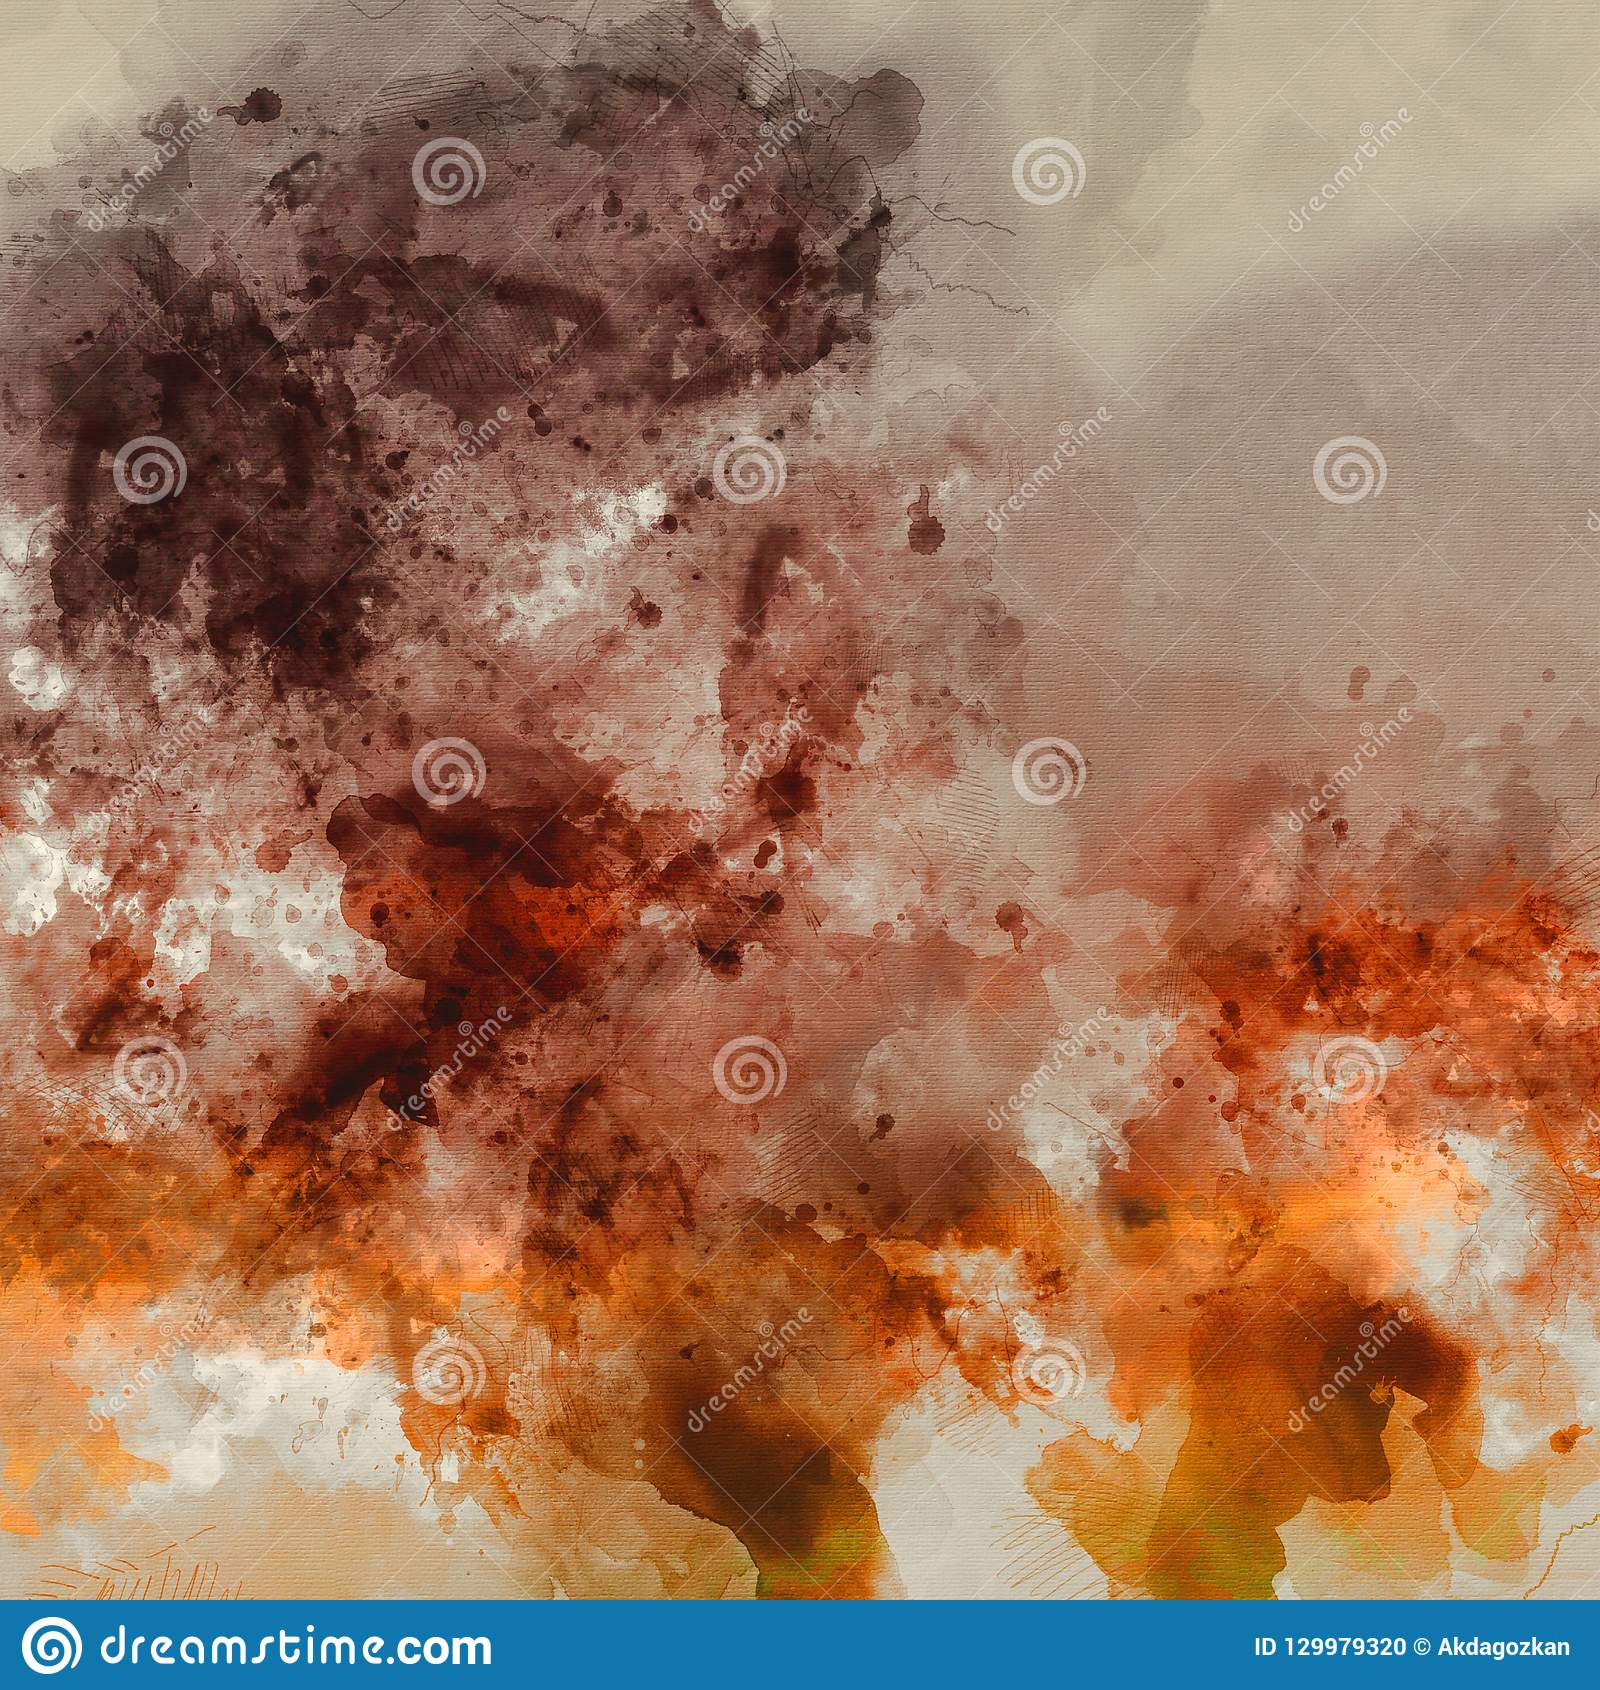 Abstract Artistic High Resolution Digital Watercolor Painting with Vivid Orange and Brown Colors on Paper Texture